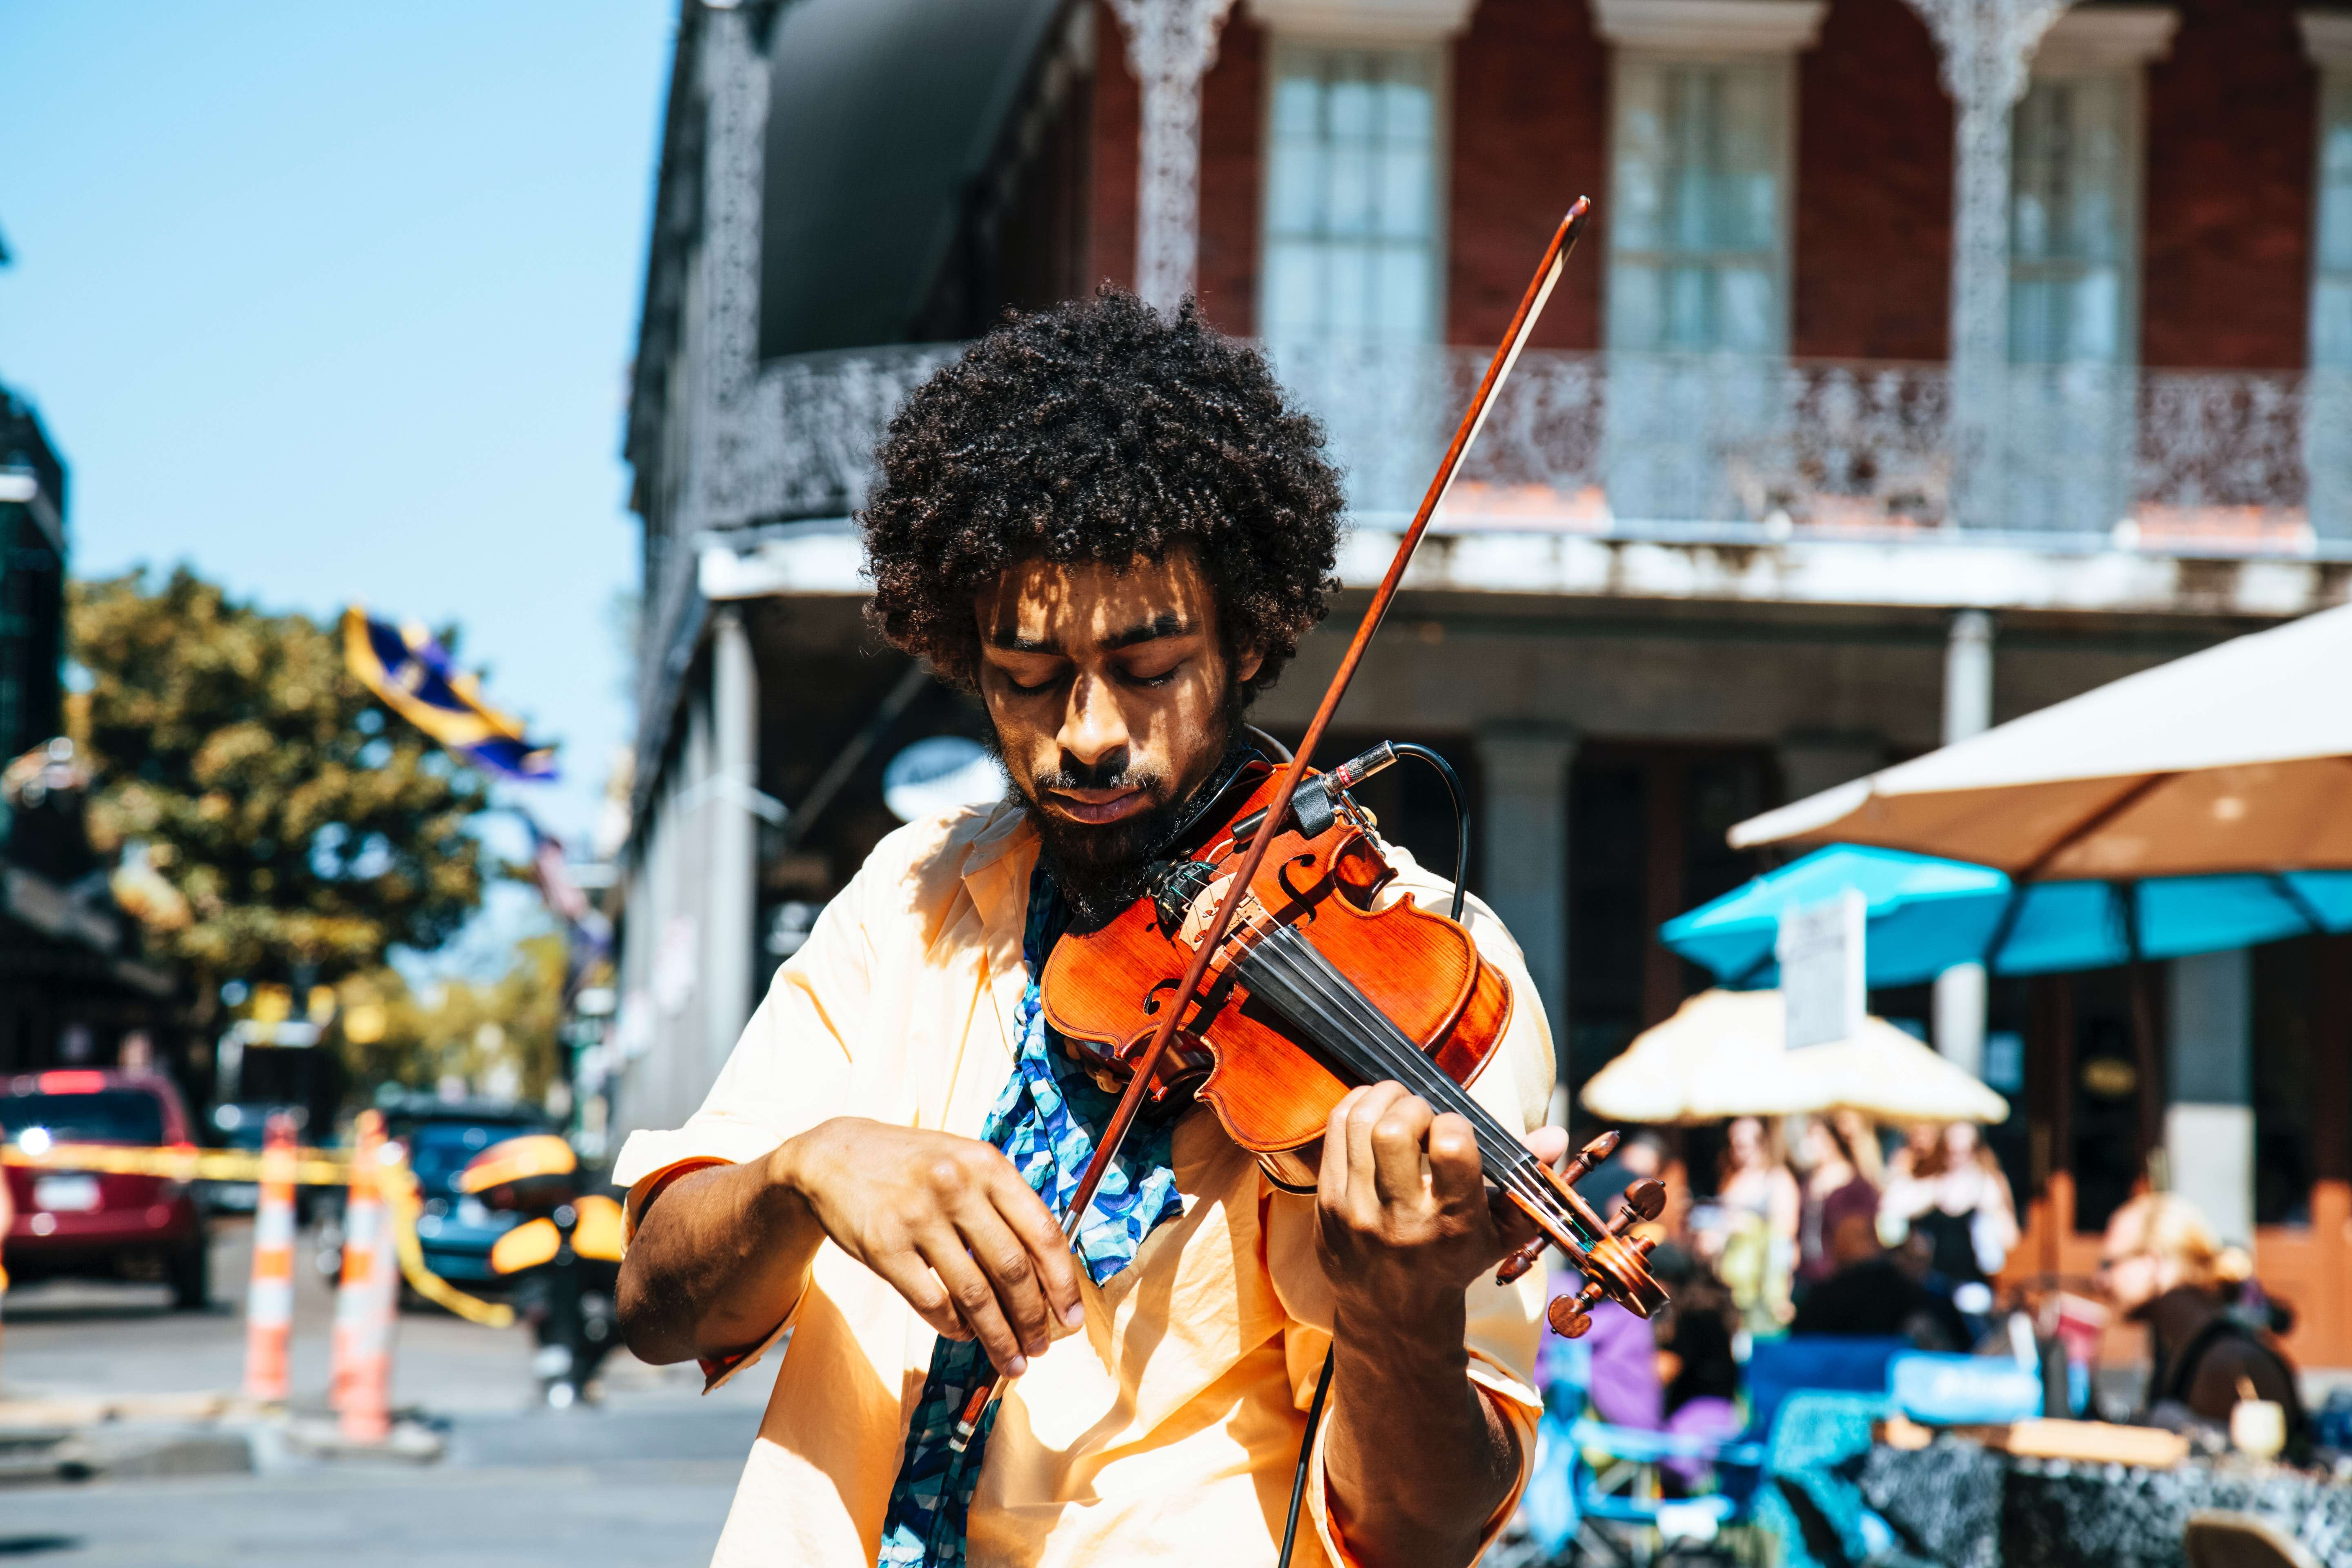 Man plays the fiddle in New Orleans' French Quarter